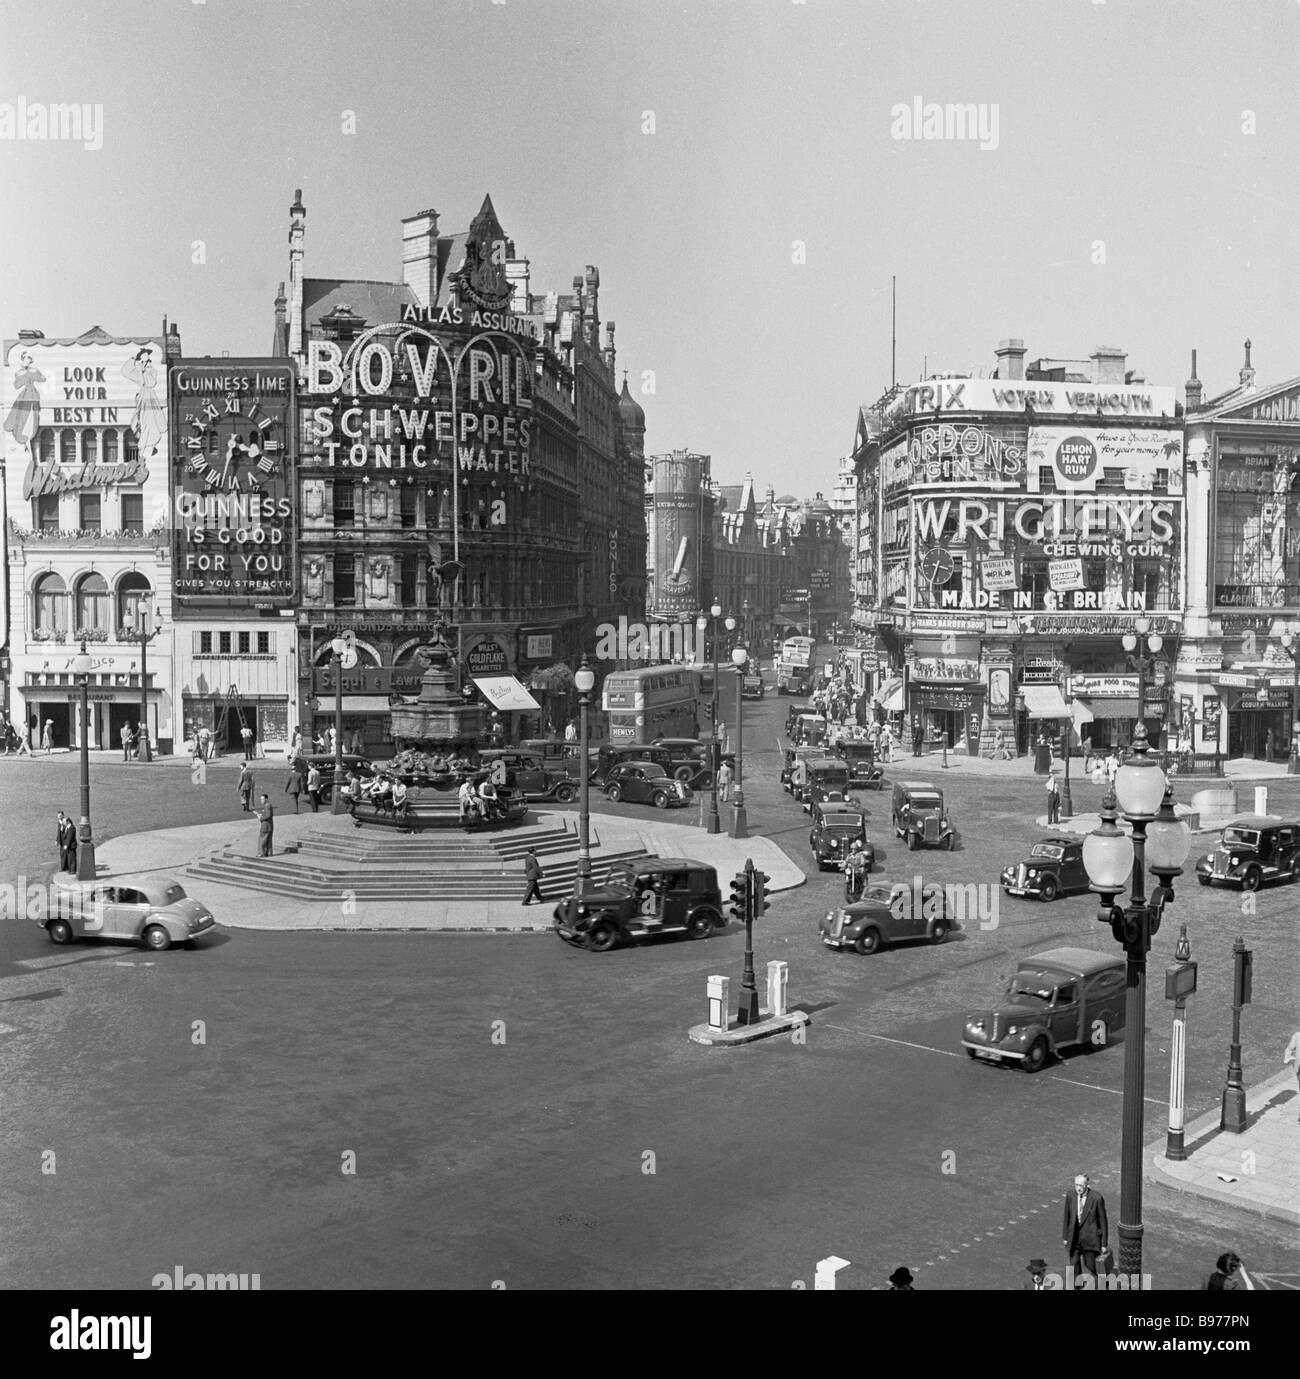 View of an iconic British tourist attraction, Piccadilly Circus, West End, London W1J, taken in 1950s by J Allan - Stock Image